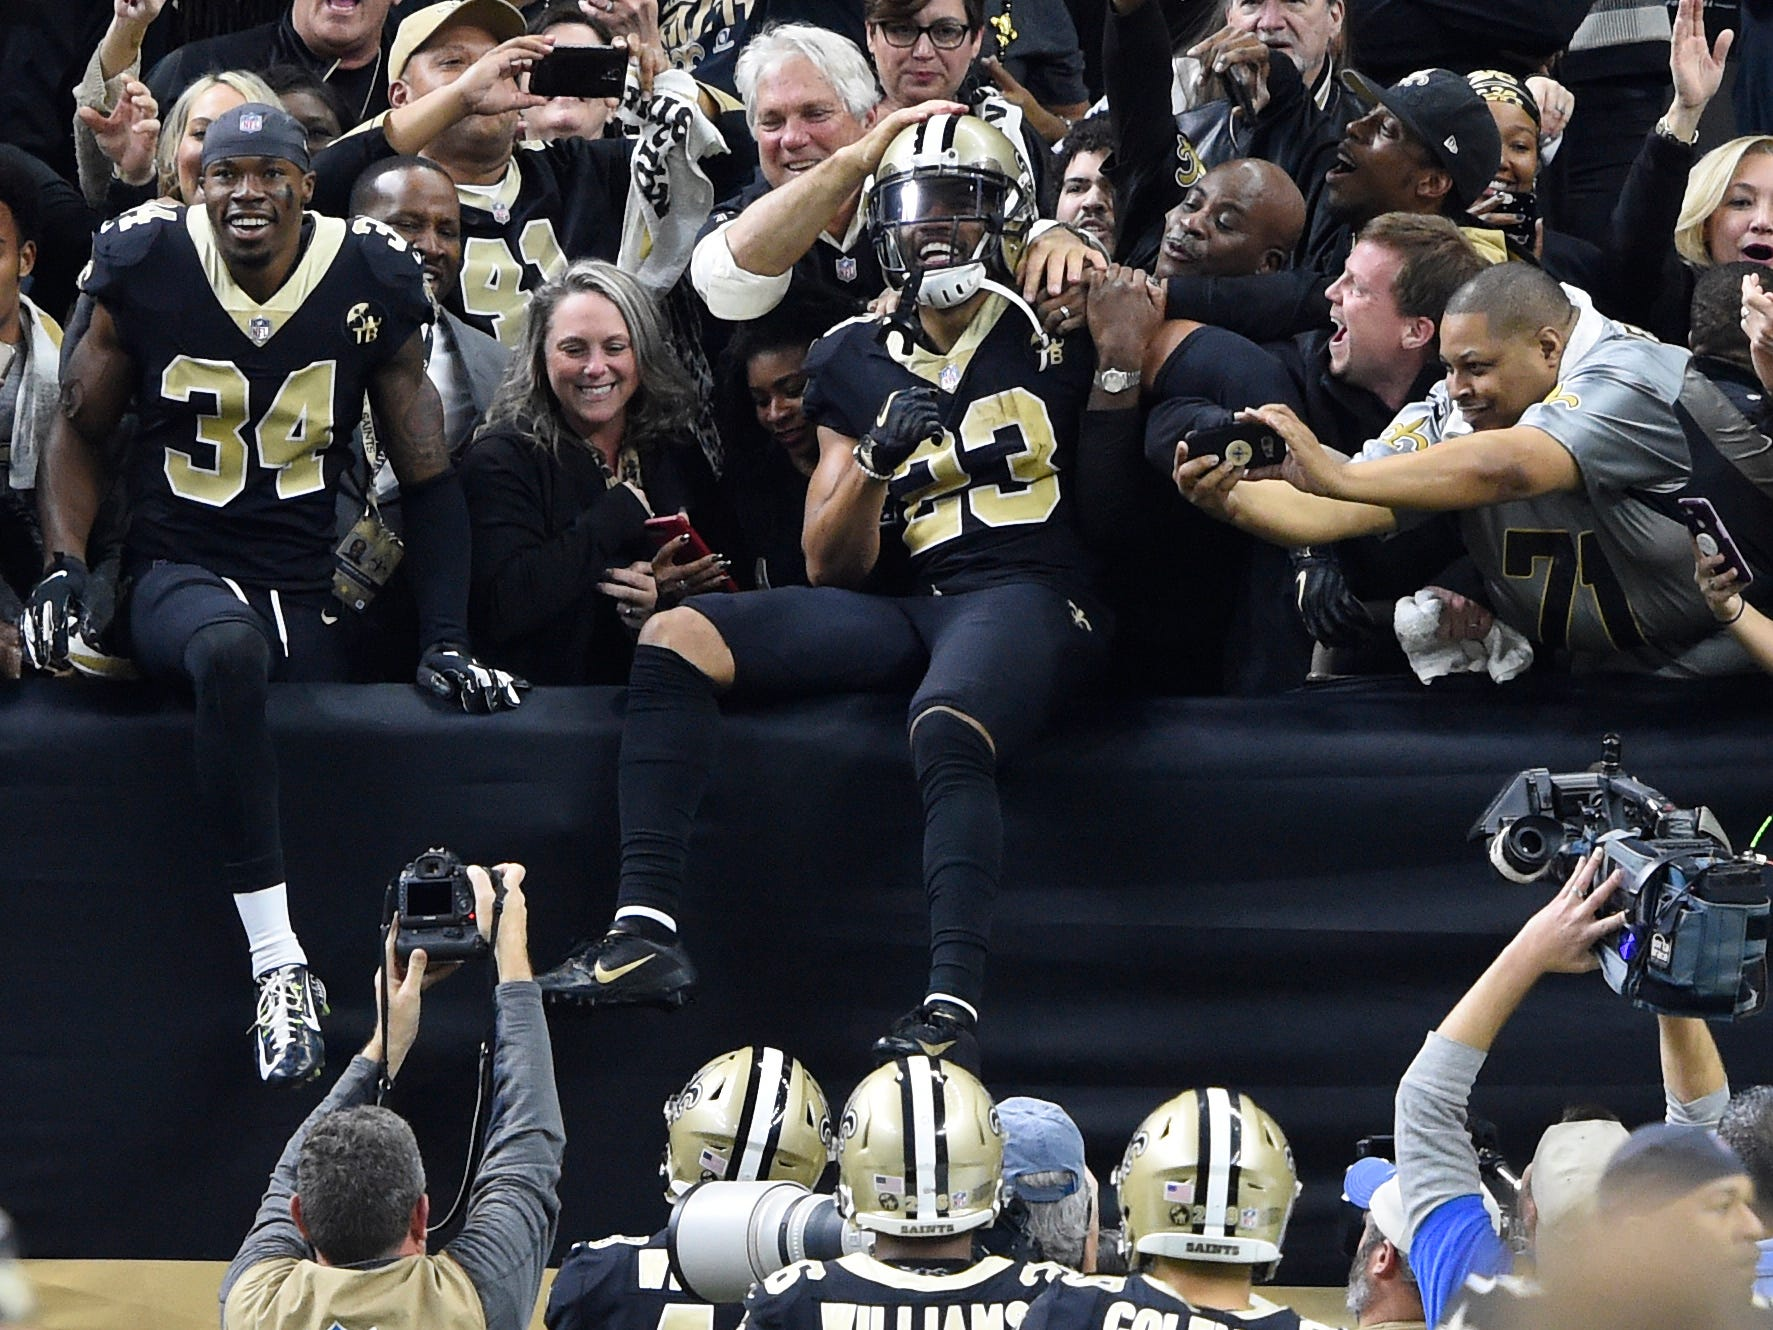 New Orleans Saints cornerback Marshon Lattimore (23) celebrates with fans after intercepting a pass against the Philadelphia Eagles to clinch an NFC divisional playoff win.